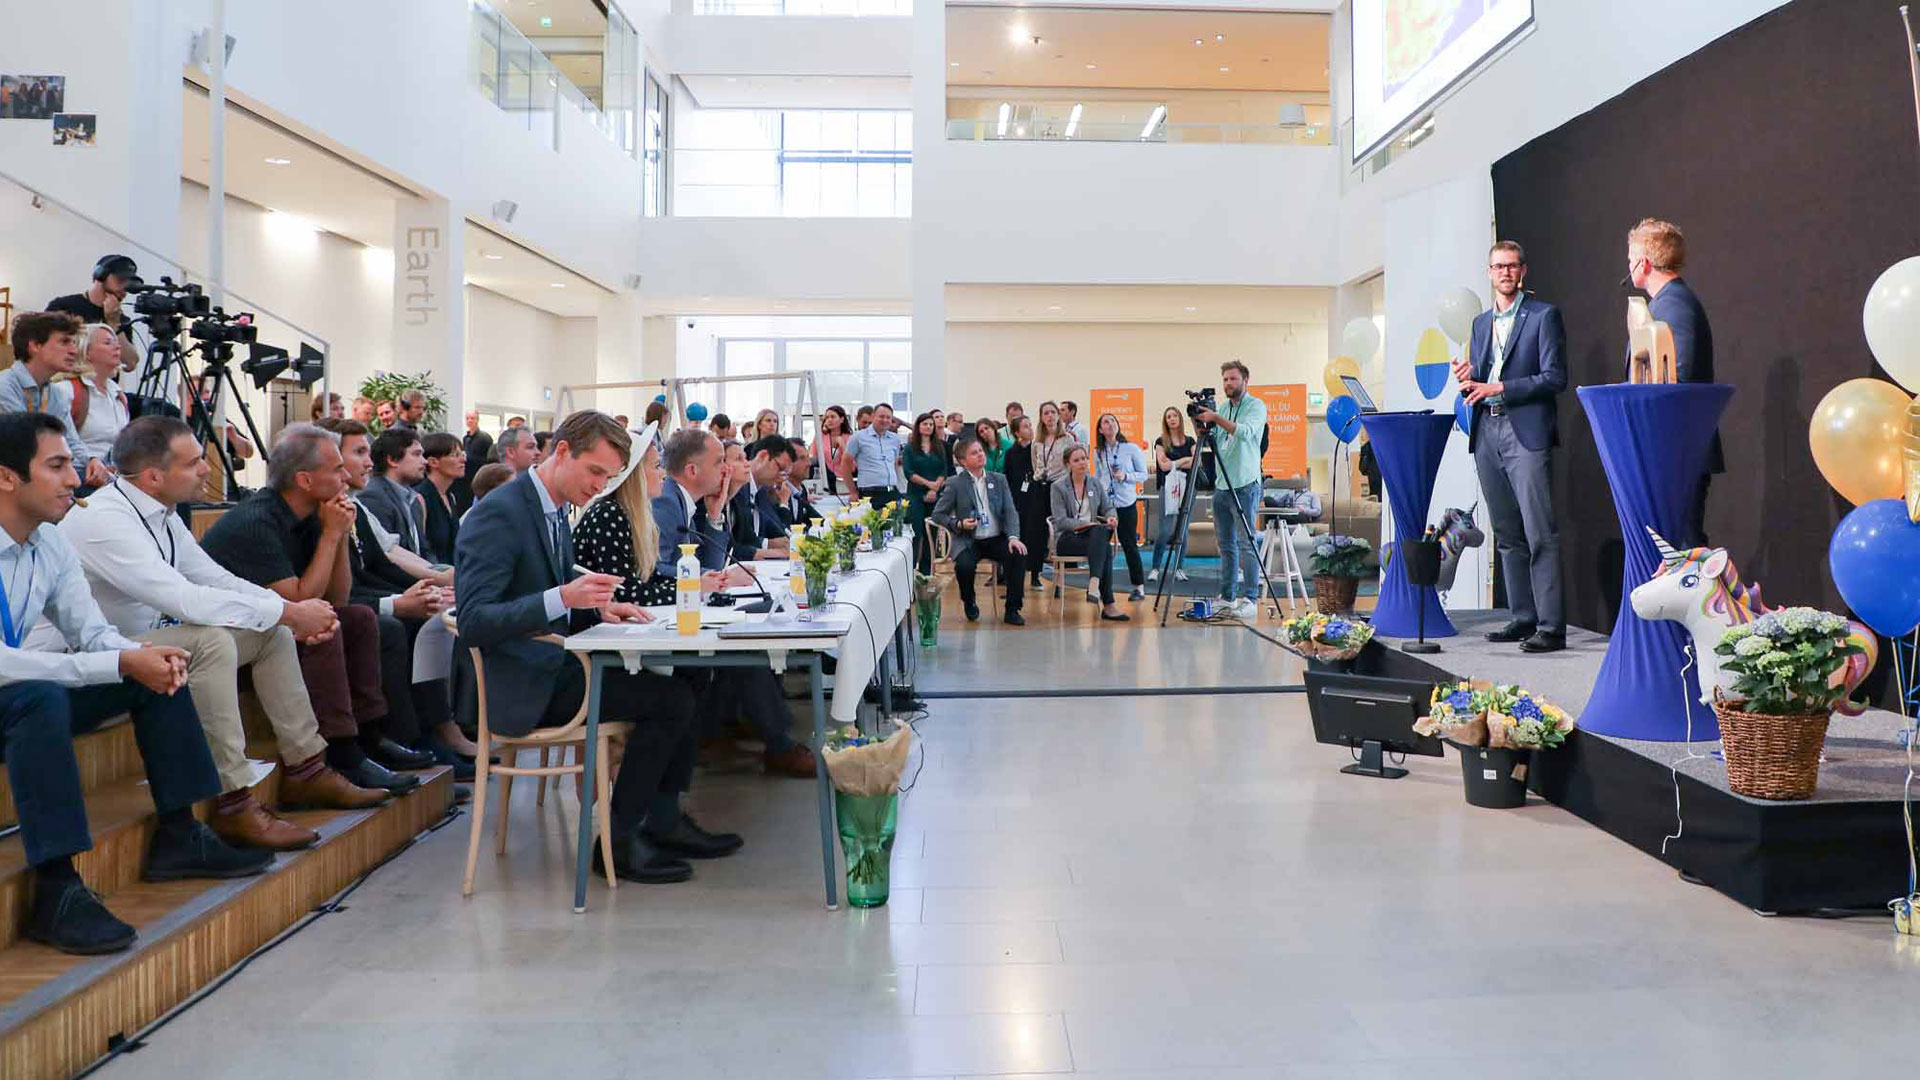 Audience, finalists and jury at Vattenfall Innovation ceremony